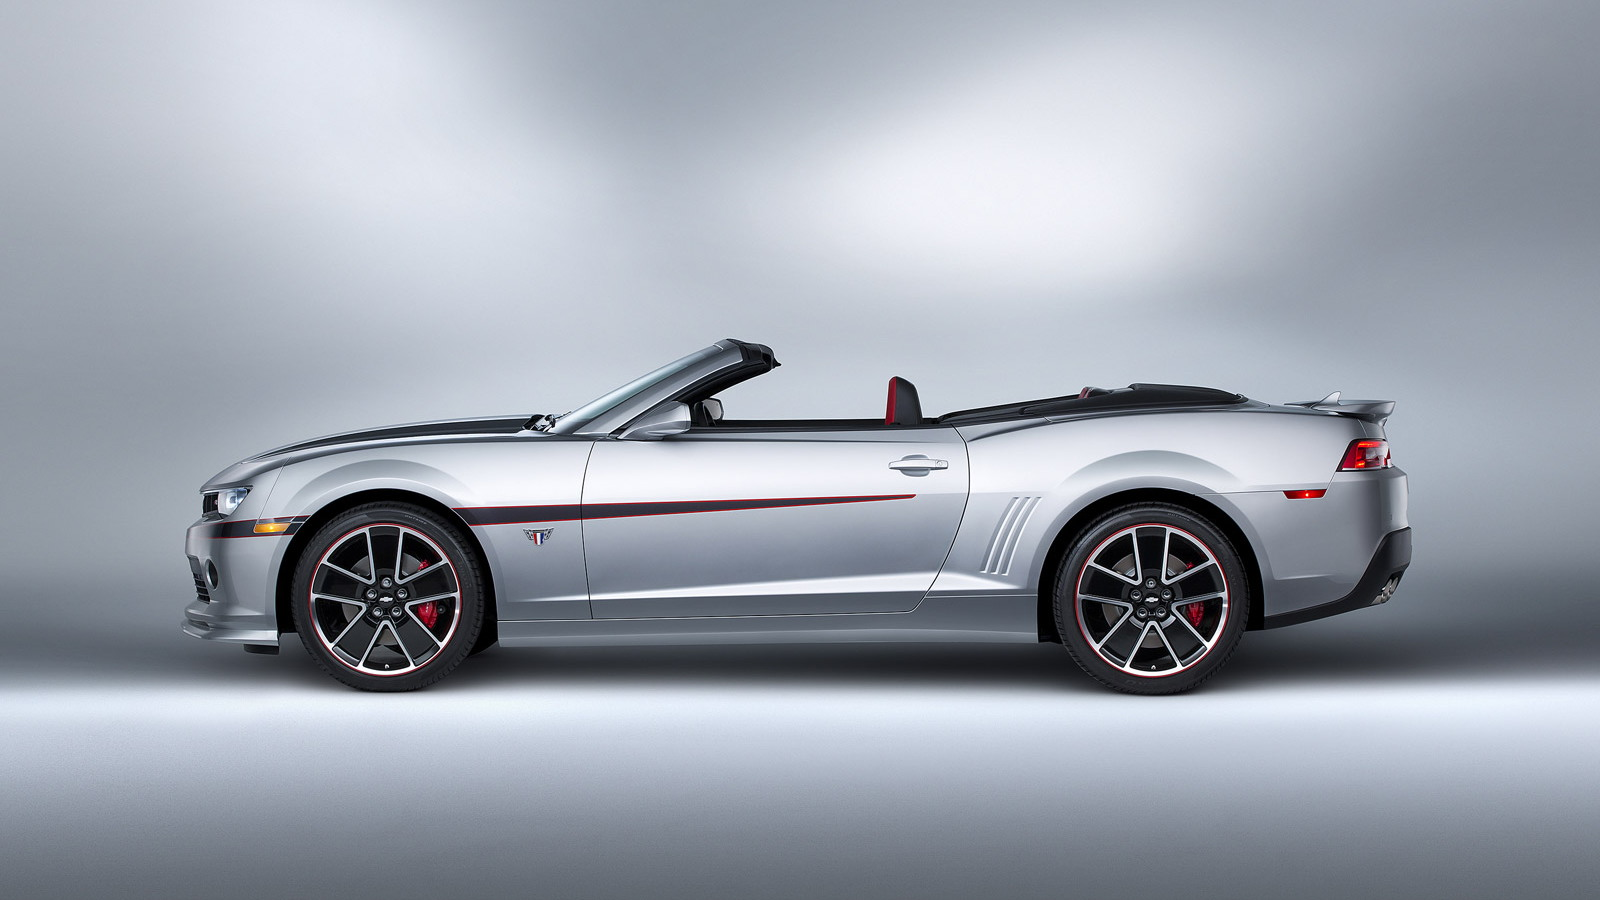 2015 Chevrolet Camaro Commemorative Edition Convertible